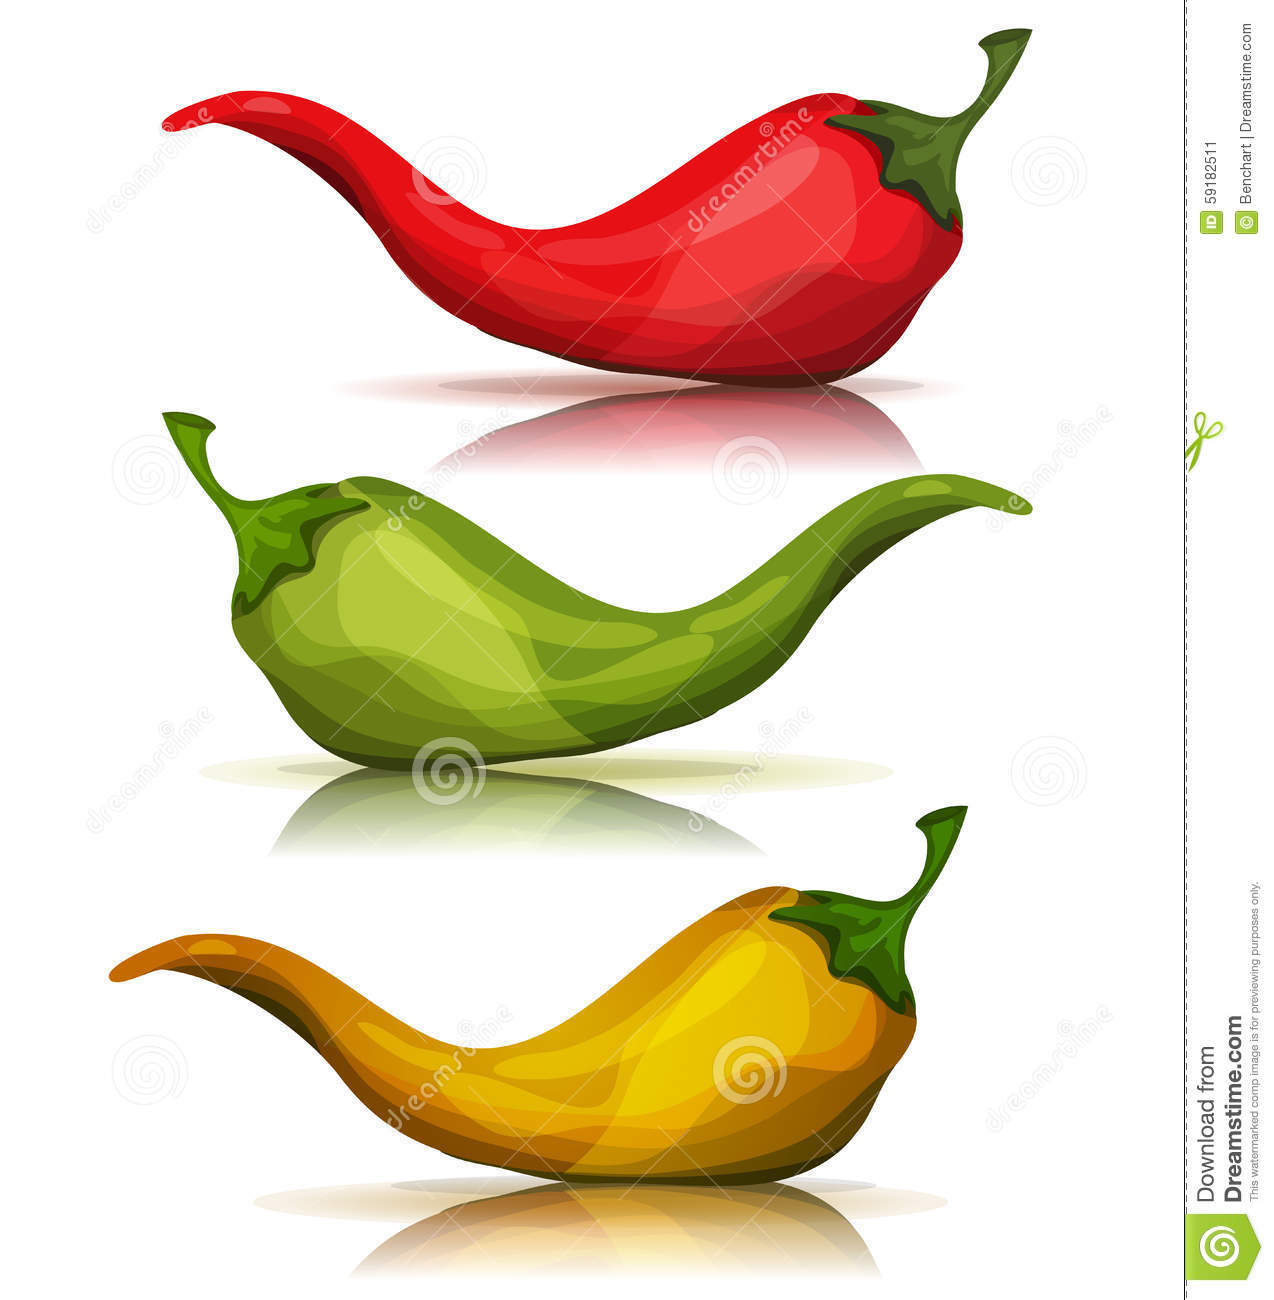 Chavo Del Ocho 255003531 additionally Mexican Pepper With Tacos Vector 10523624 further Wind serpent also Simba Lion King 85cm Lifesize Cardboard Cutout moreover Stock Illustration Cartoon Red Green Yellow Hot Chili Pepper Illustration Set Spice Mexican Food Image59182511. on mexican cartoon characters